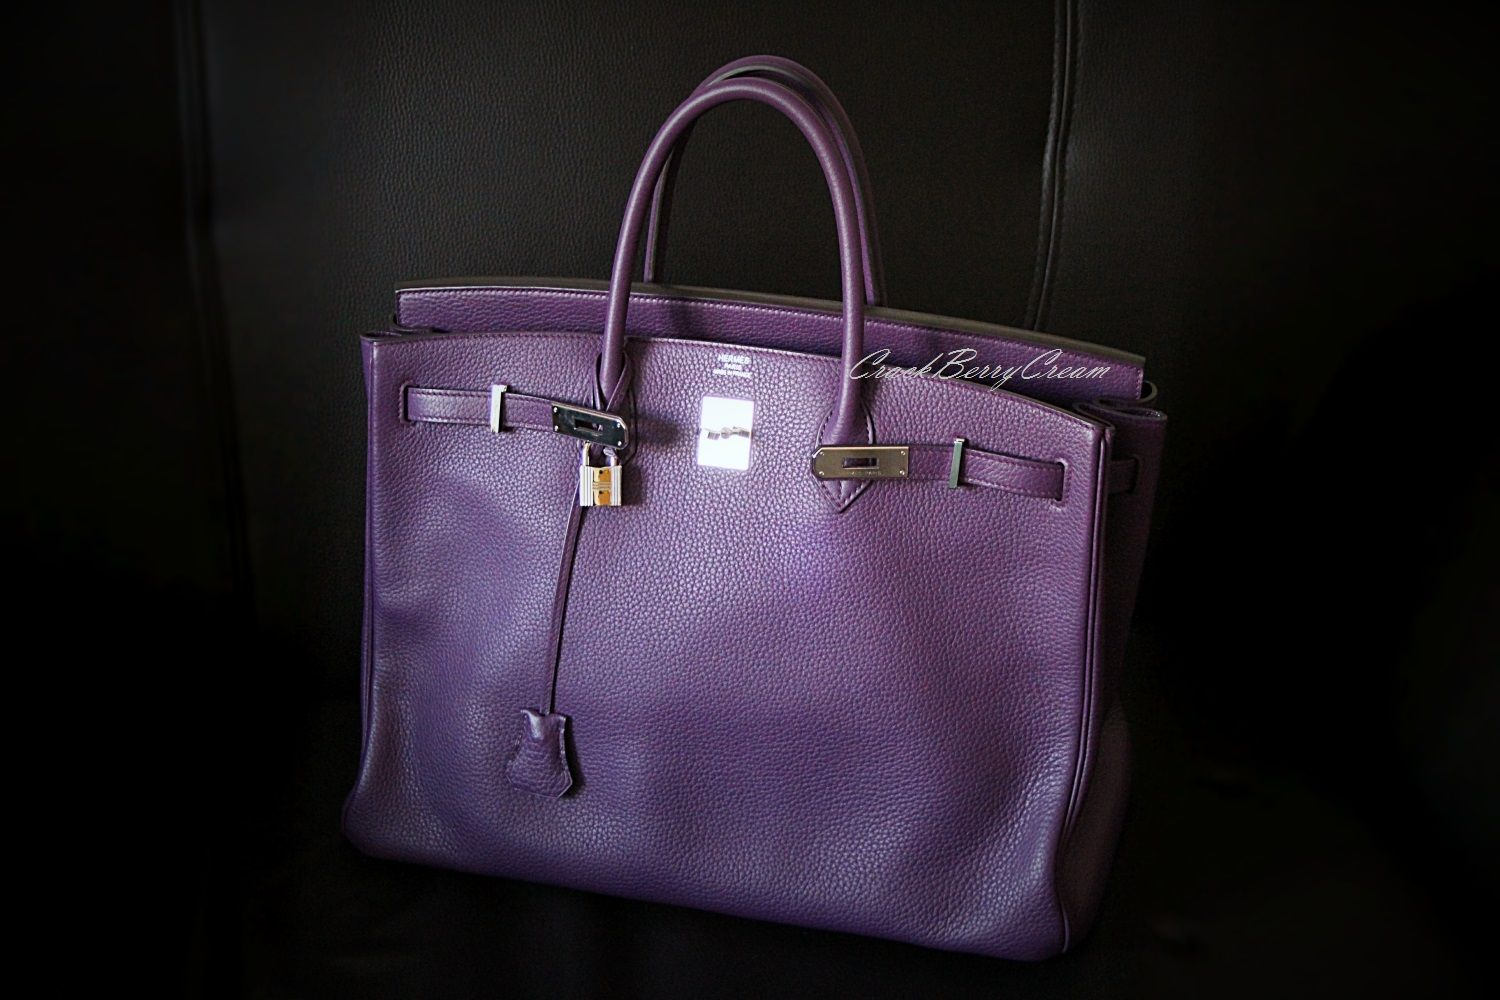 Another shot of my Hermès Birkin 40cm in Ultraviolet Clemence leather